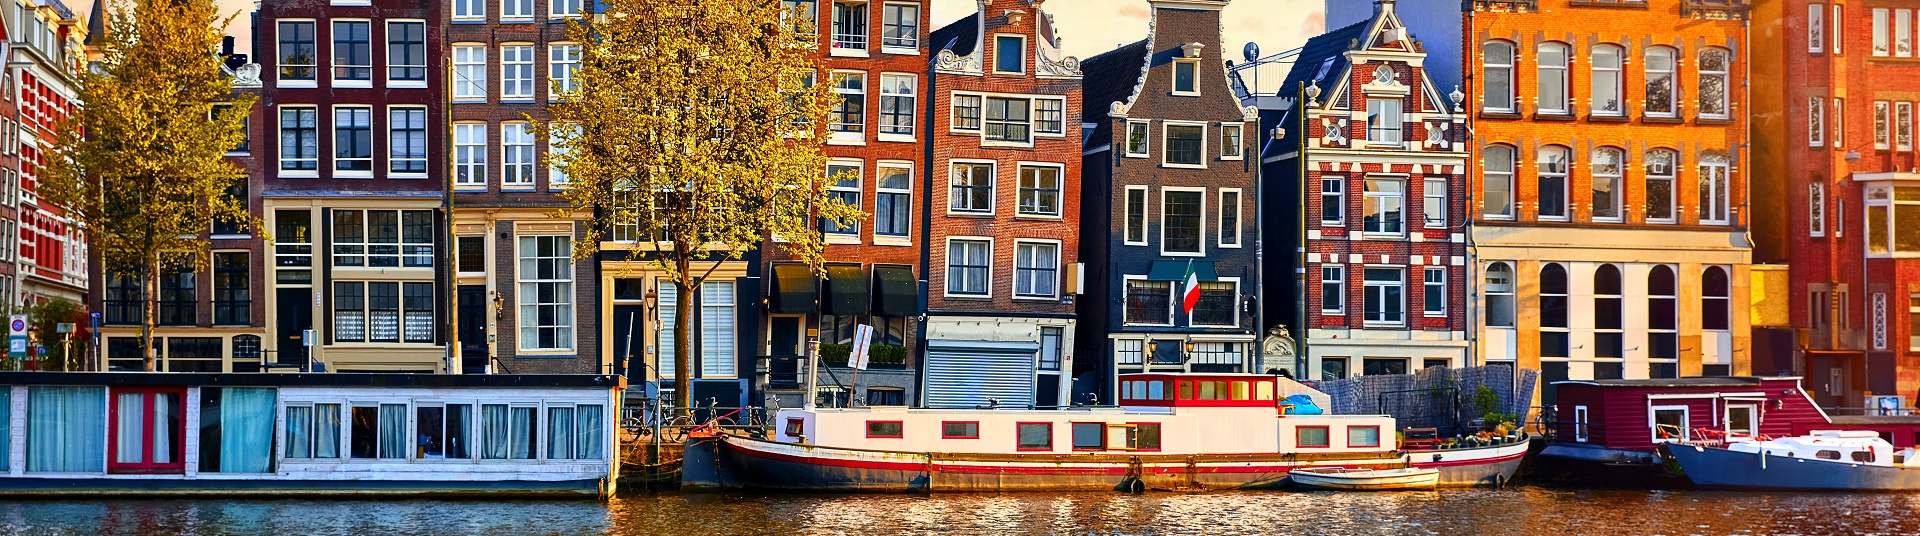 Week-end pas cher Amsterdam